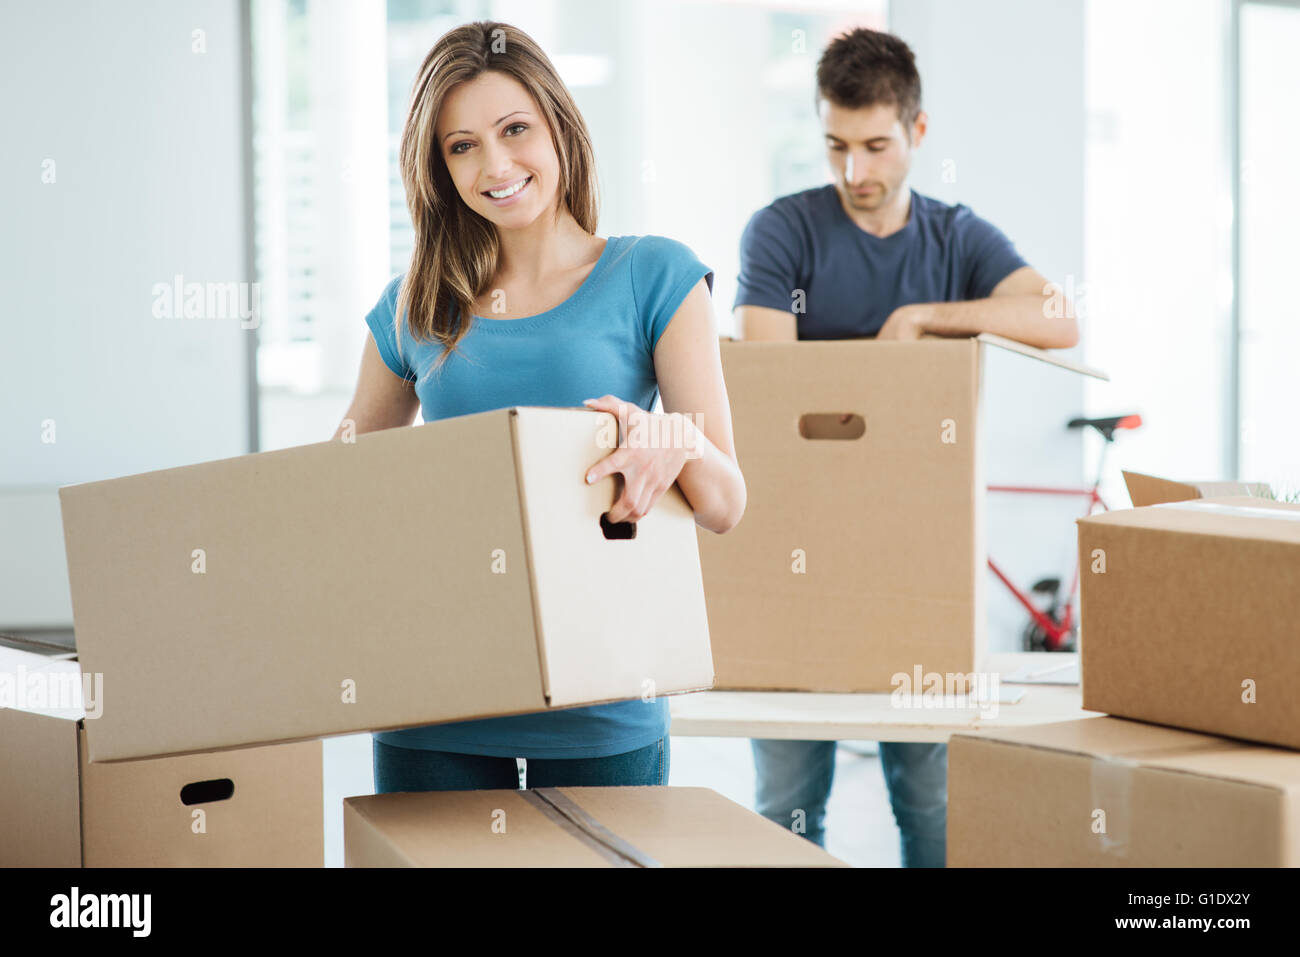 Young happy couple moving in their new house and unpacking boxes, she is carrying a carton box and smiling at camera Stock Photo